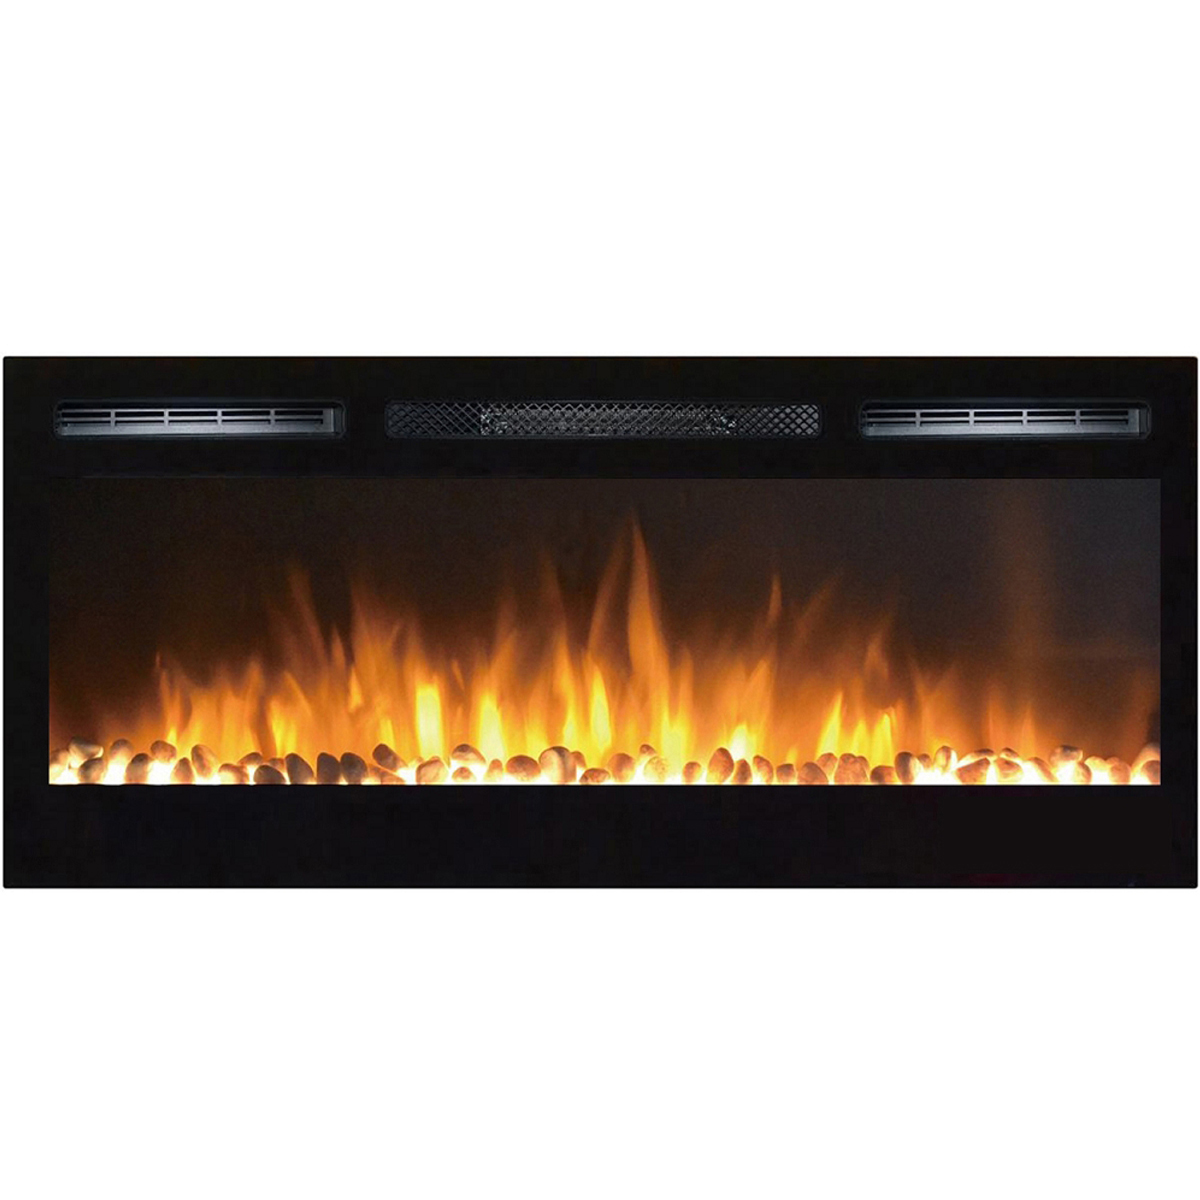 Wall Mount Electric Fireplace Or Recessed Within Designs: Moda Flame 36 Inch Cynergy Pebble Built-In Recessed Wall